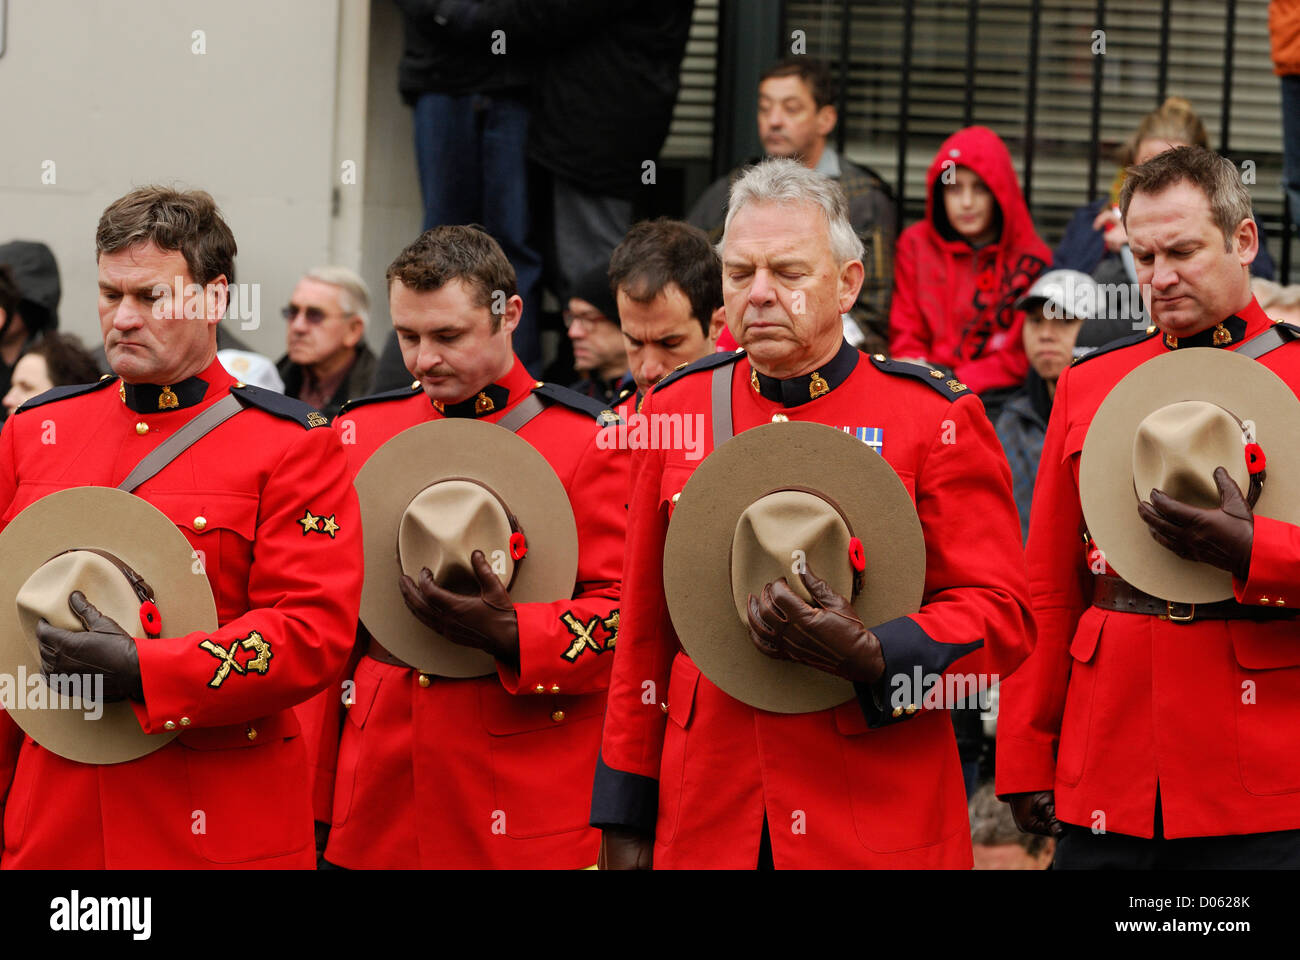 R.C.M.P. in full red serge hats lowered attending a remembrance ceremony  in Vancouver. Stock Photo